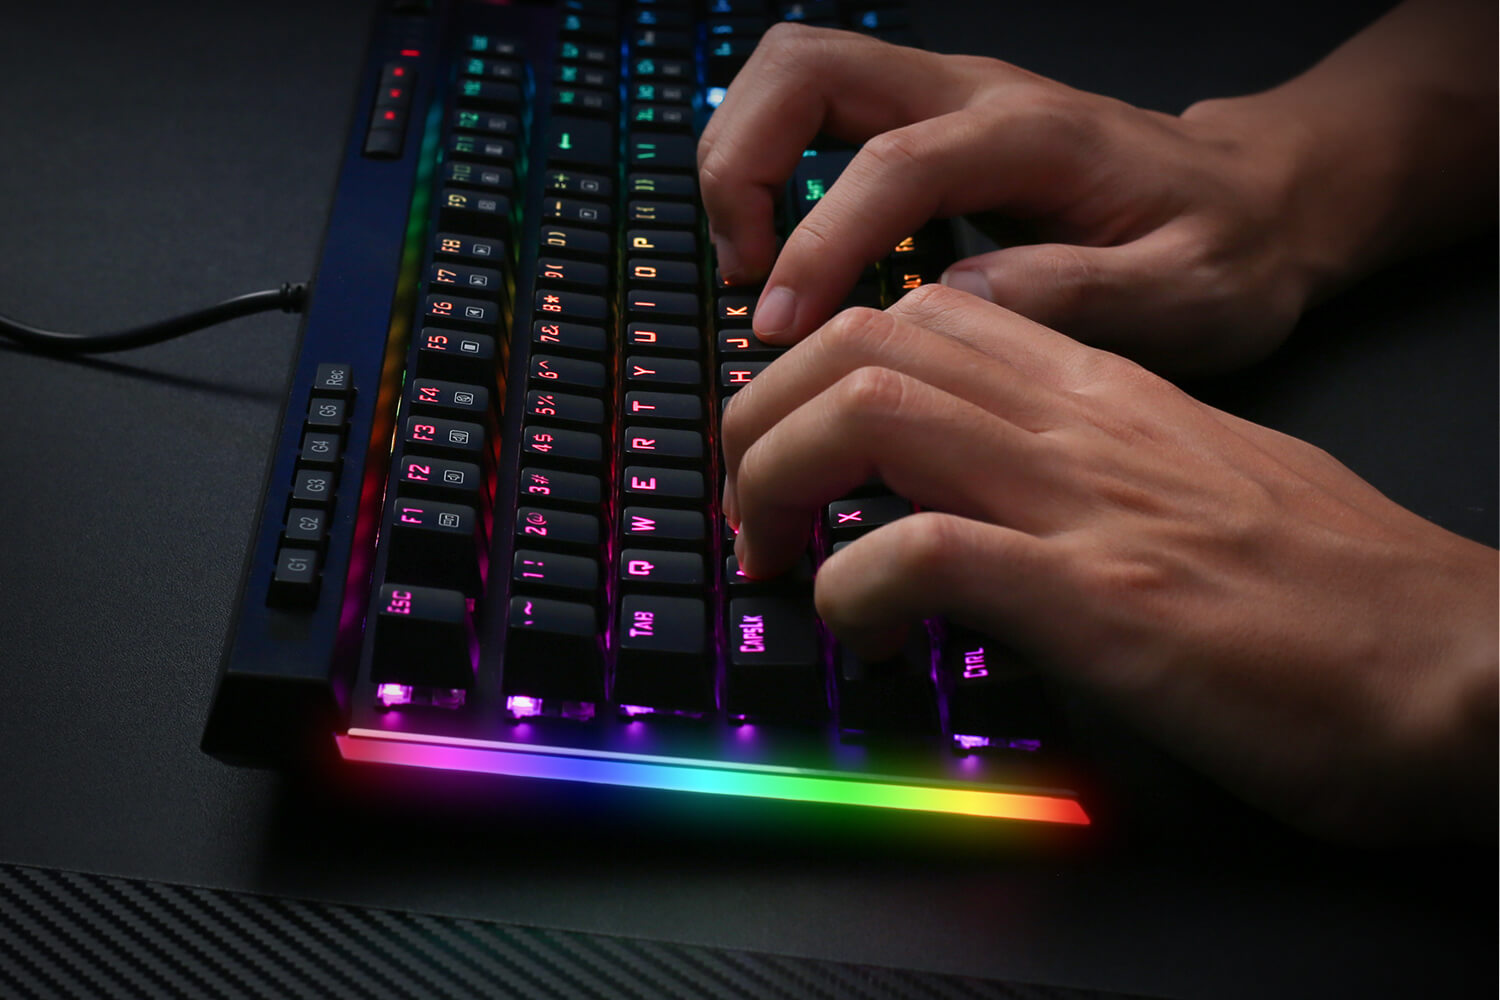 Redragon k580 vata keybaord with RGB Side Lights